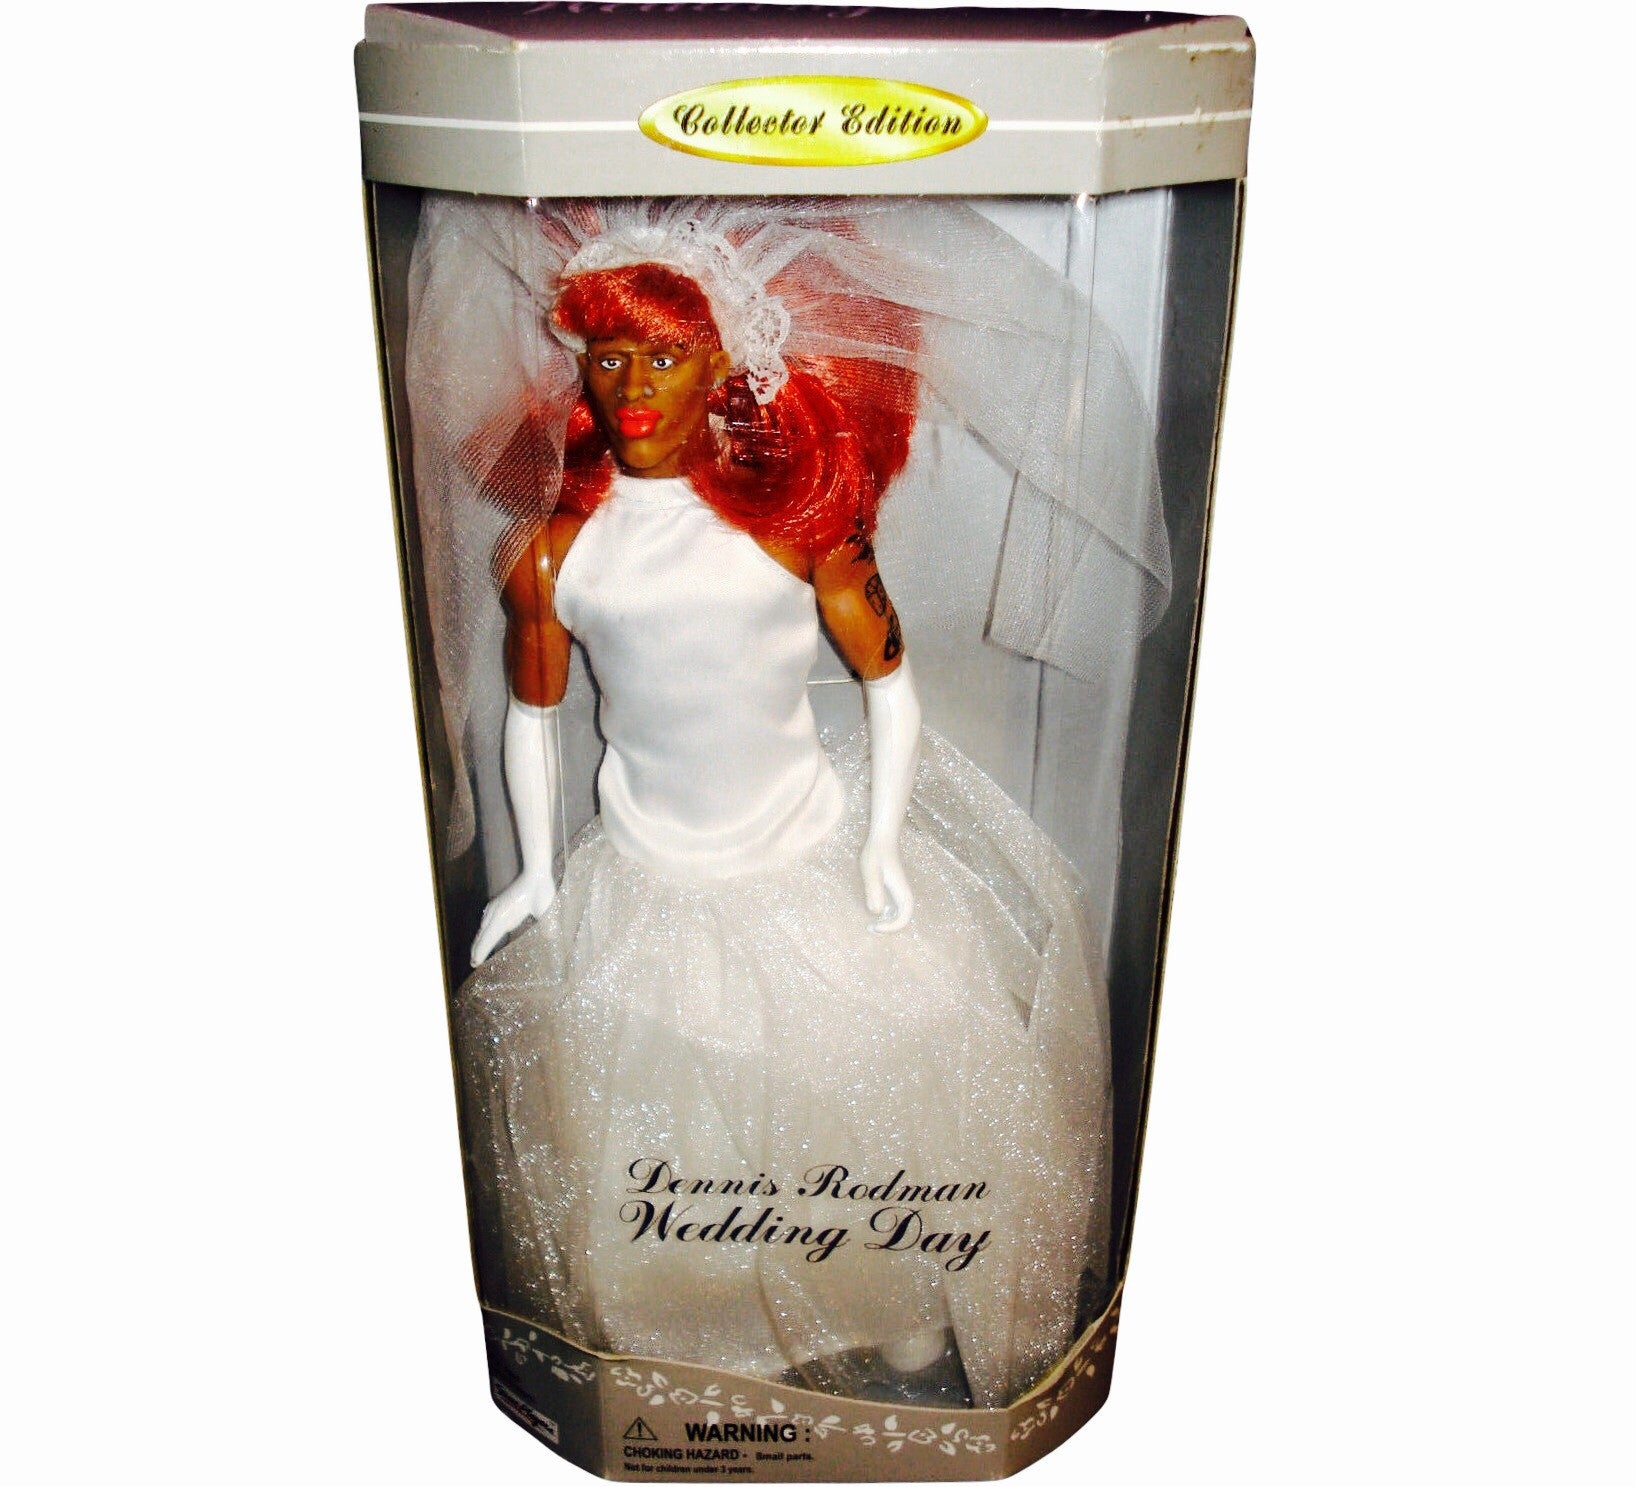 Dennis Rodman Wedding Doll - And Still